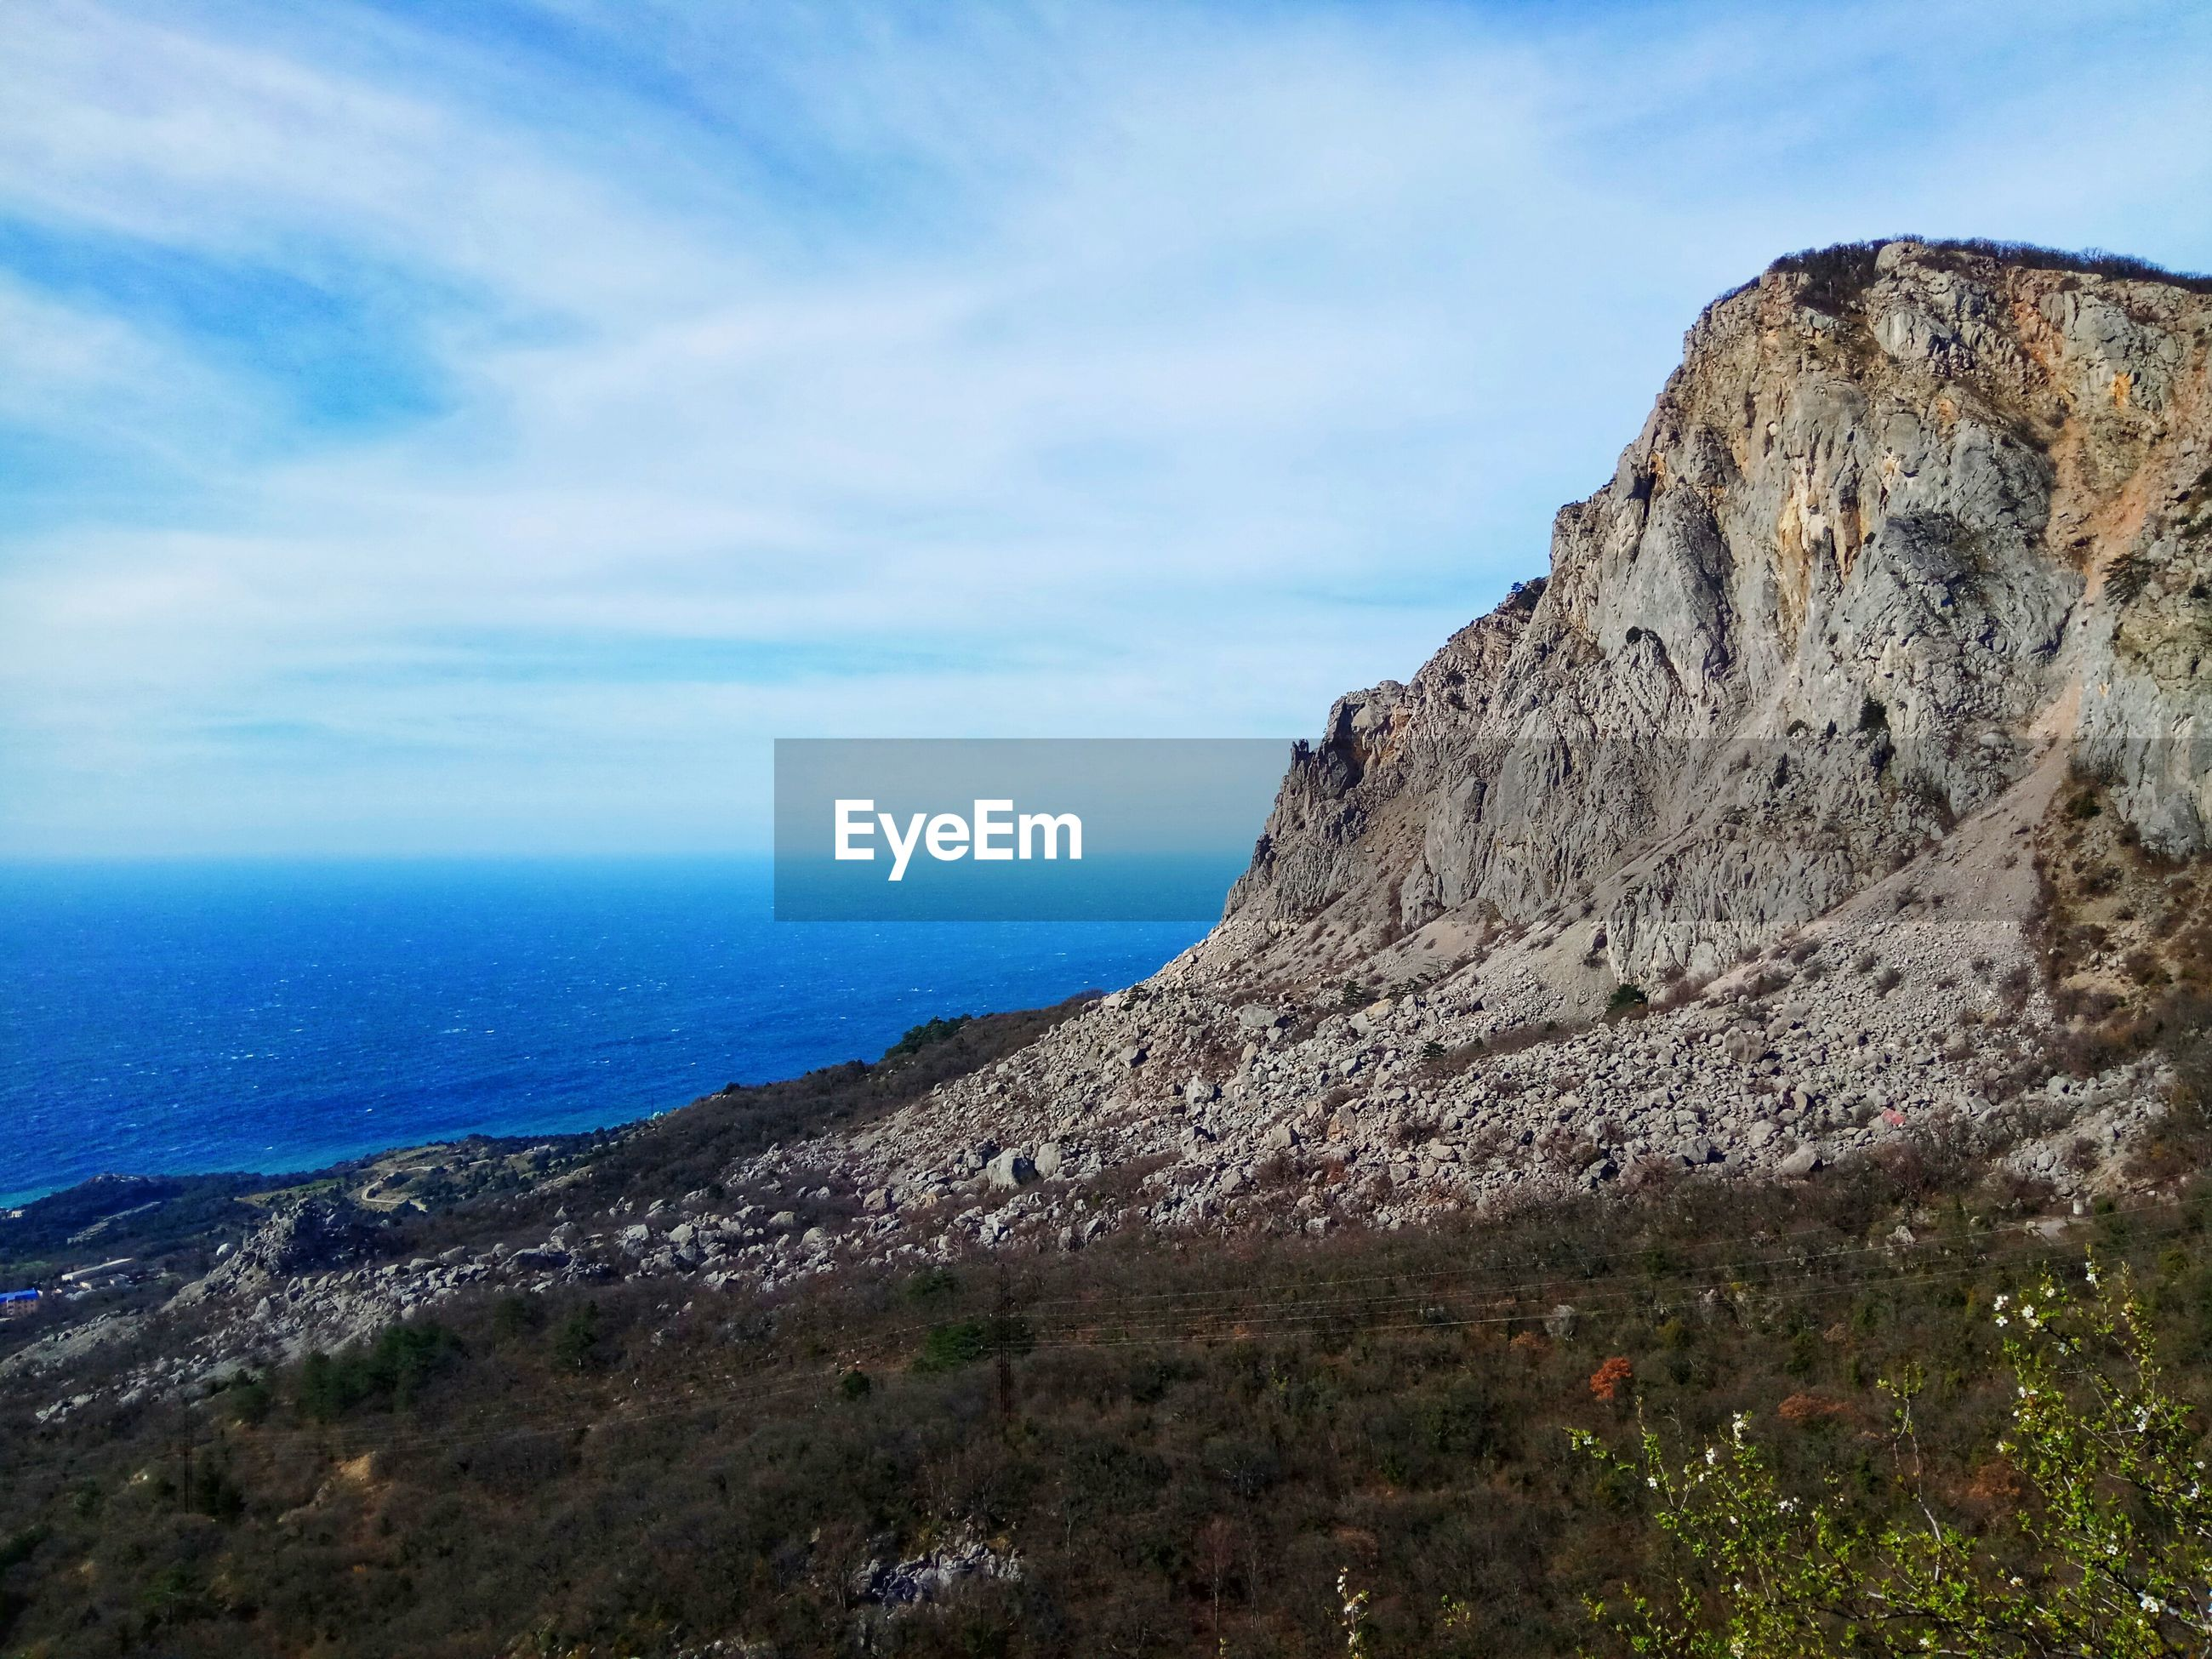 SCENIC VIEW OF SEA BY ROCK FORMATION AGAINST SKY